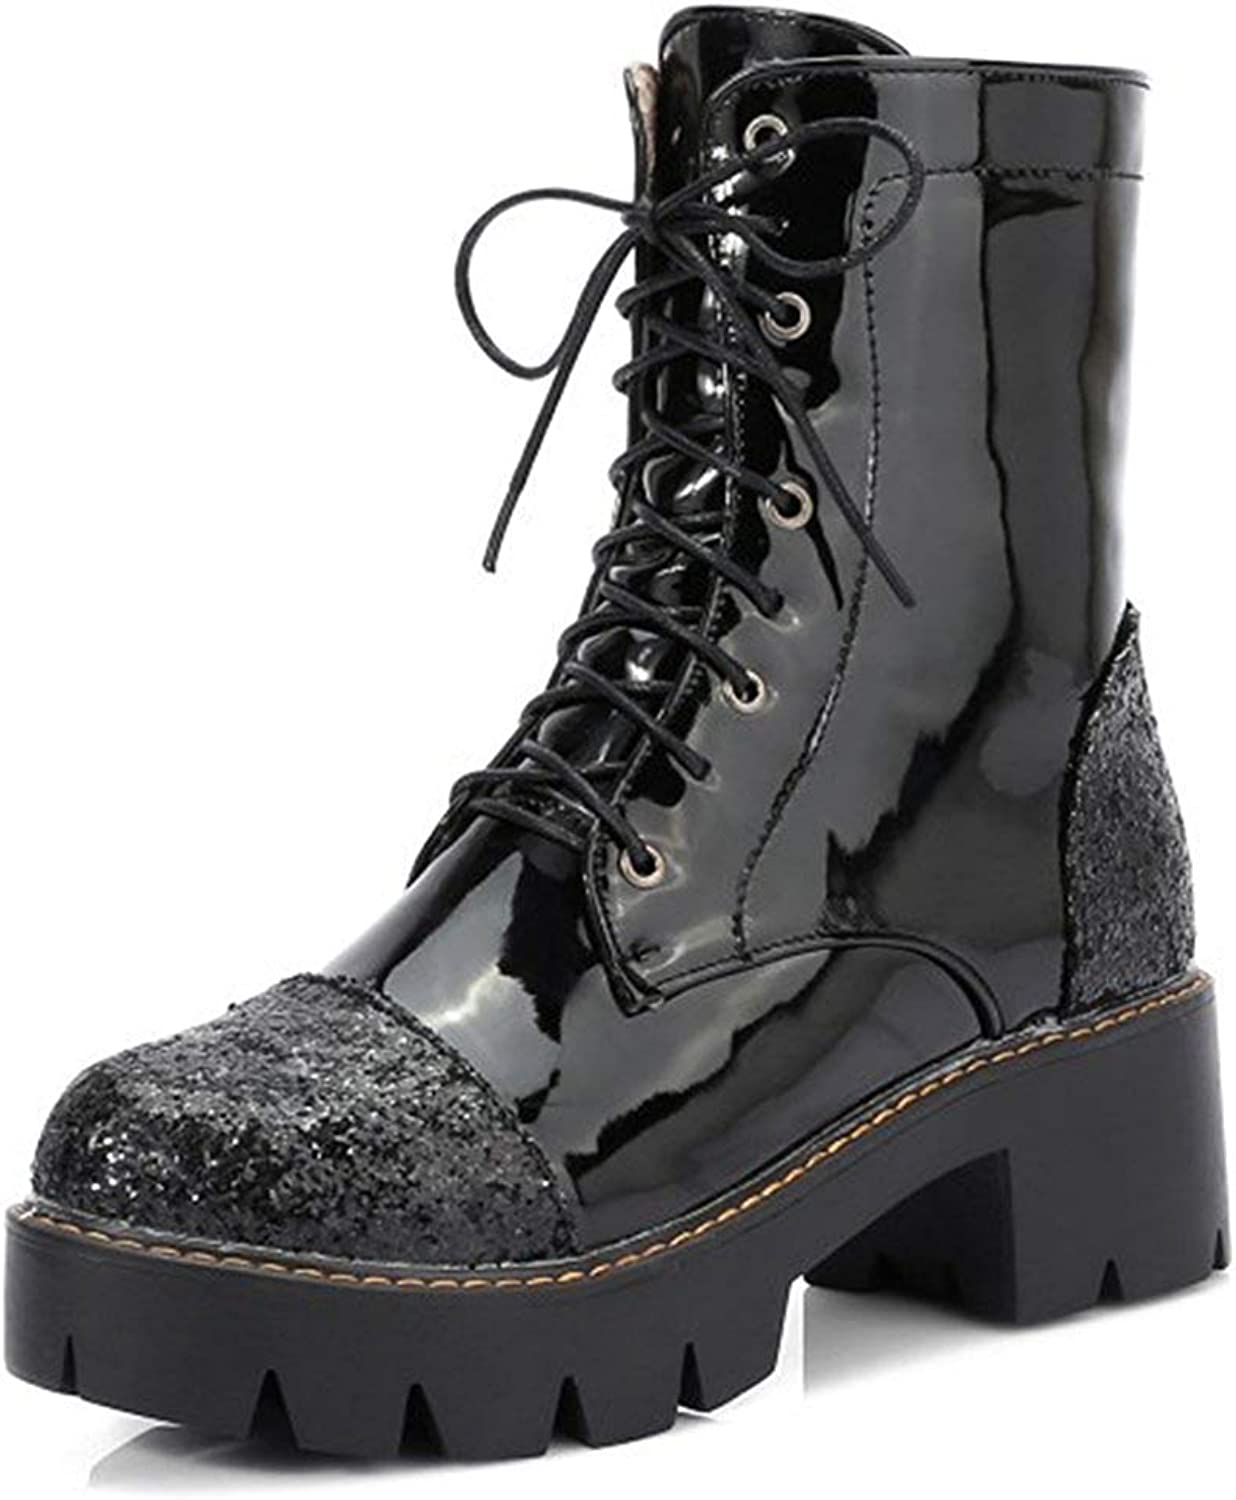 Unm Women's Glitter Sequins Thick Sole Lace Up Chunky Mid Heel Ankle Boots Platform Round Toe Booties